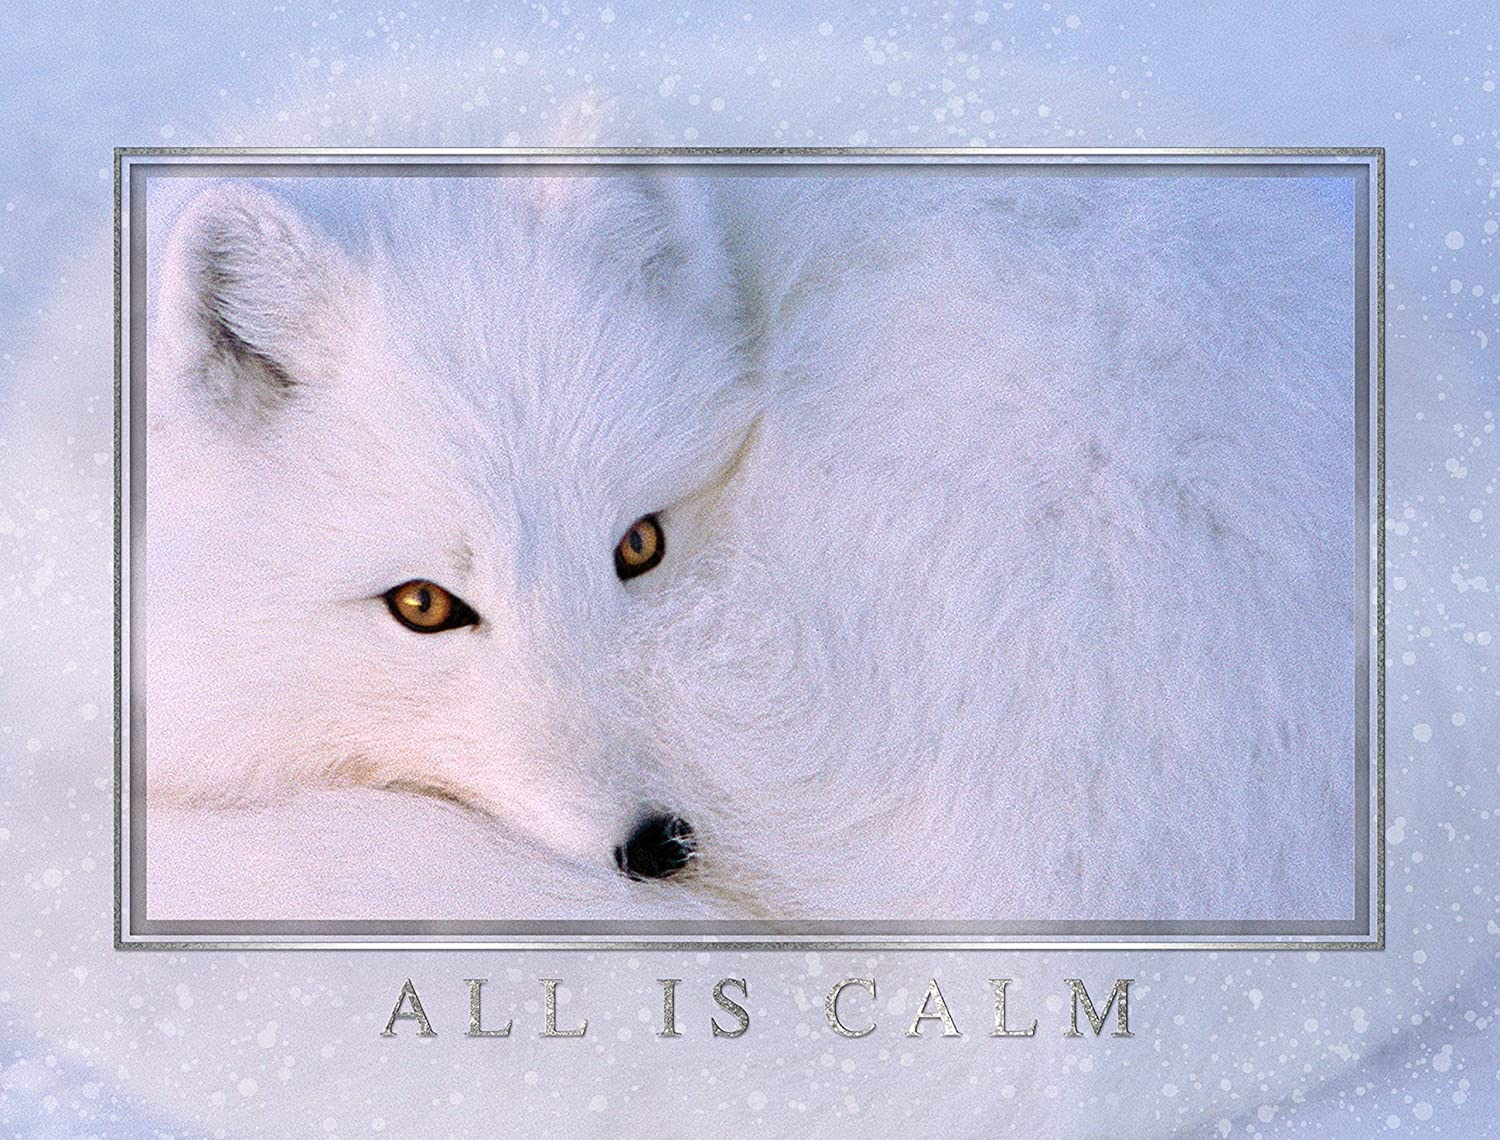 """Snow White Fox"" Arctic Fox - Boxed Wildlife Christmas Cards - 5 5/8 x 7 3/8 Inches - 15 Heavyweight Cards and 16 Envelopes"